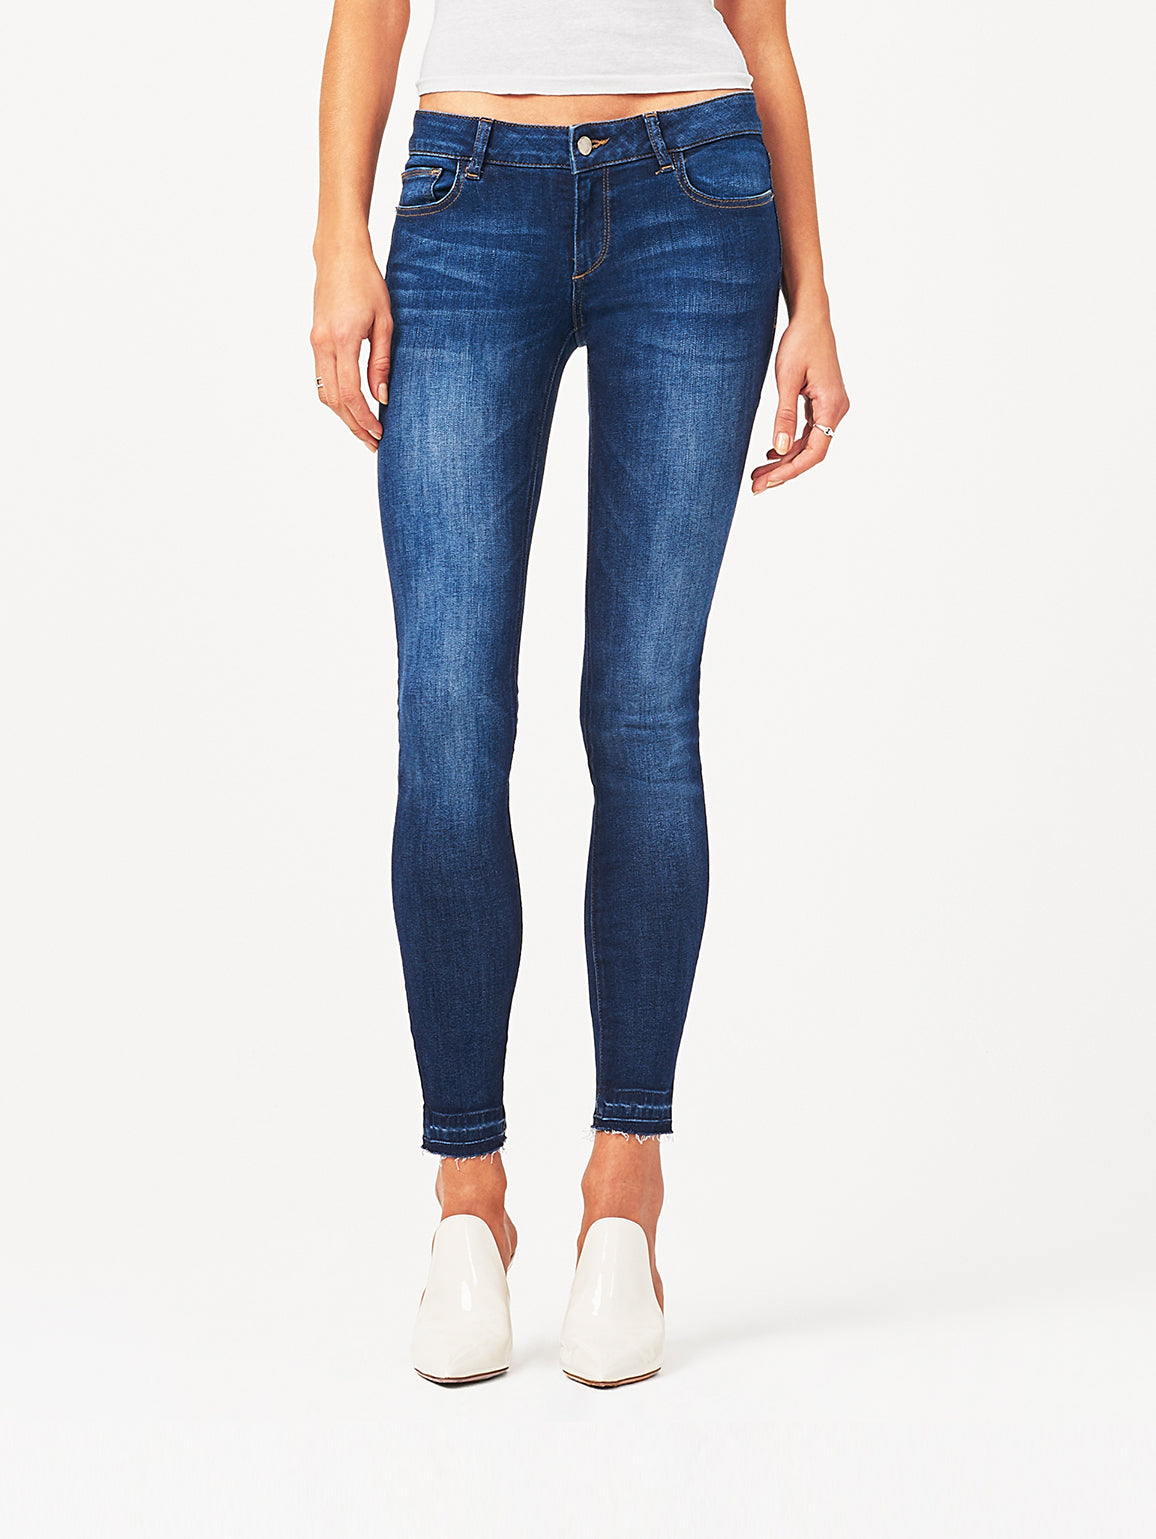 Image of Cameron Low Rise Skinny / Eden